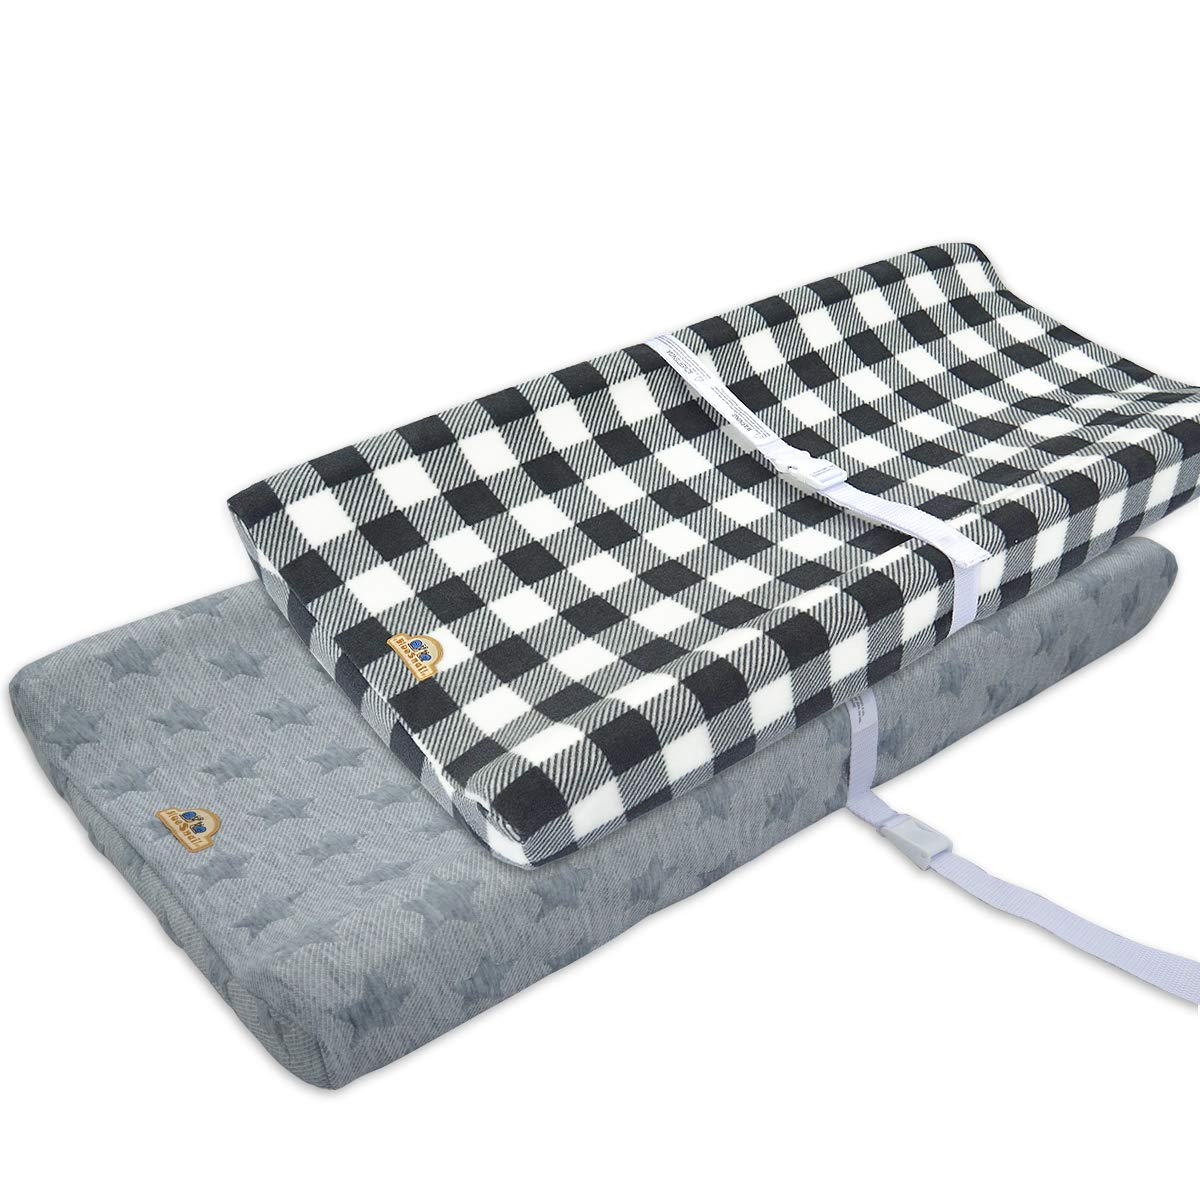 BlueSnail Plush Super Soft and Comfy Changing Pad Cover for Baby 2-Pack (Gray Buffalo Palid)